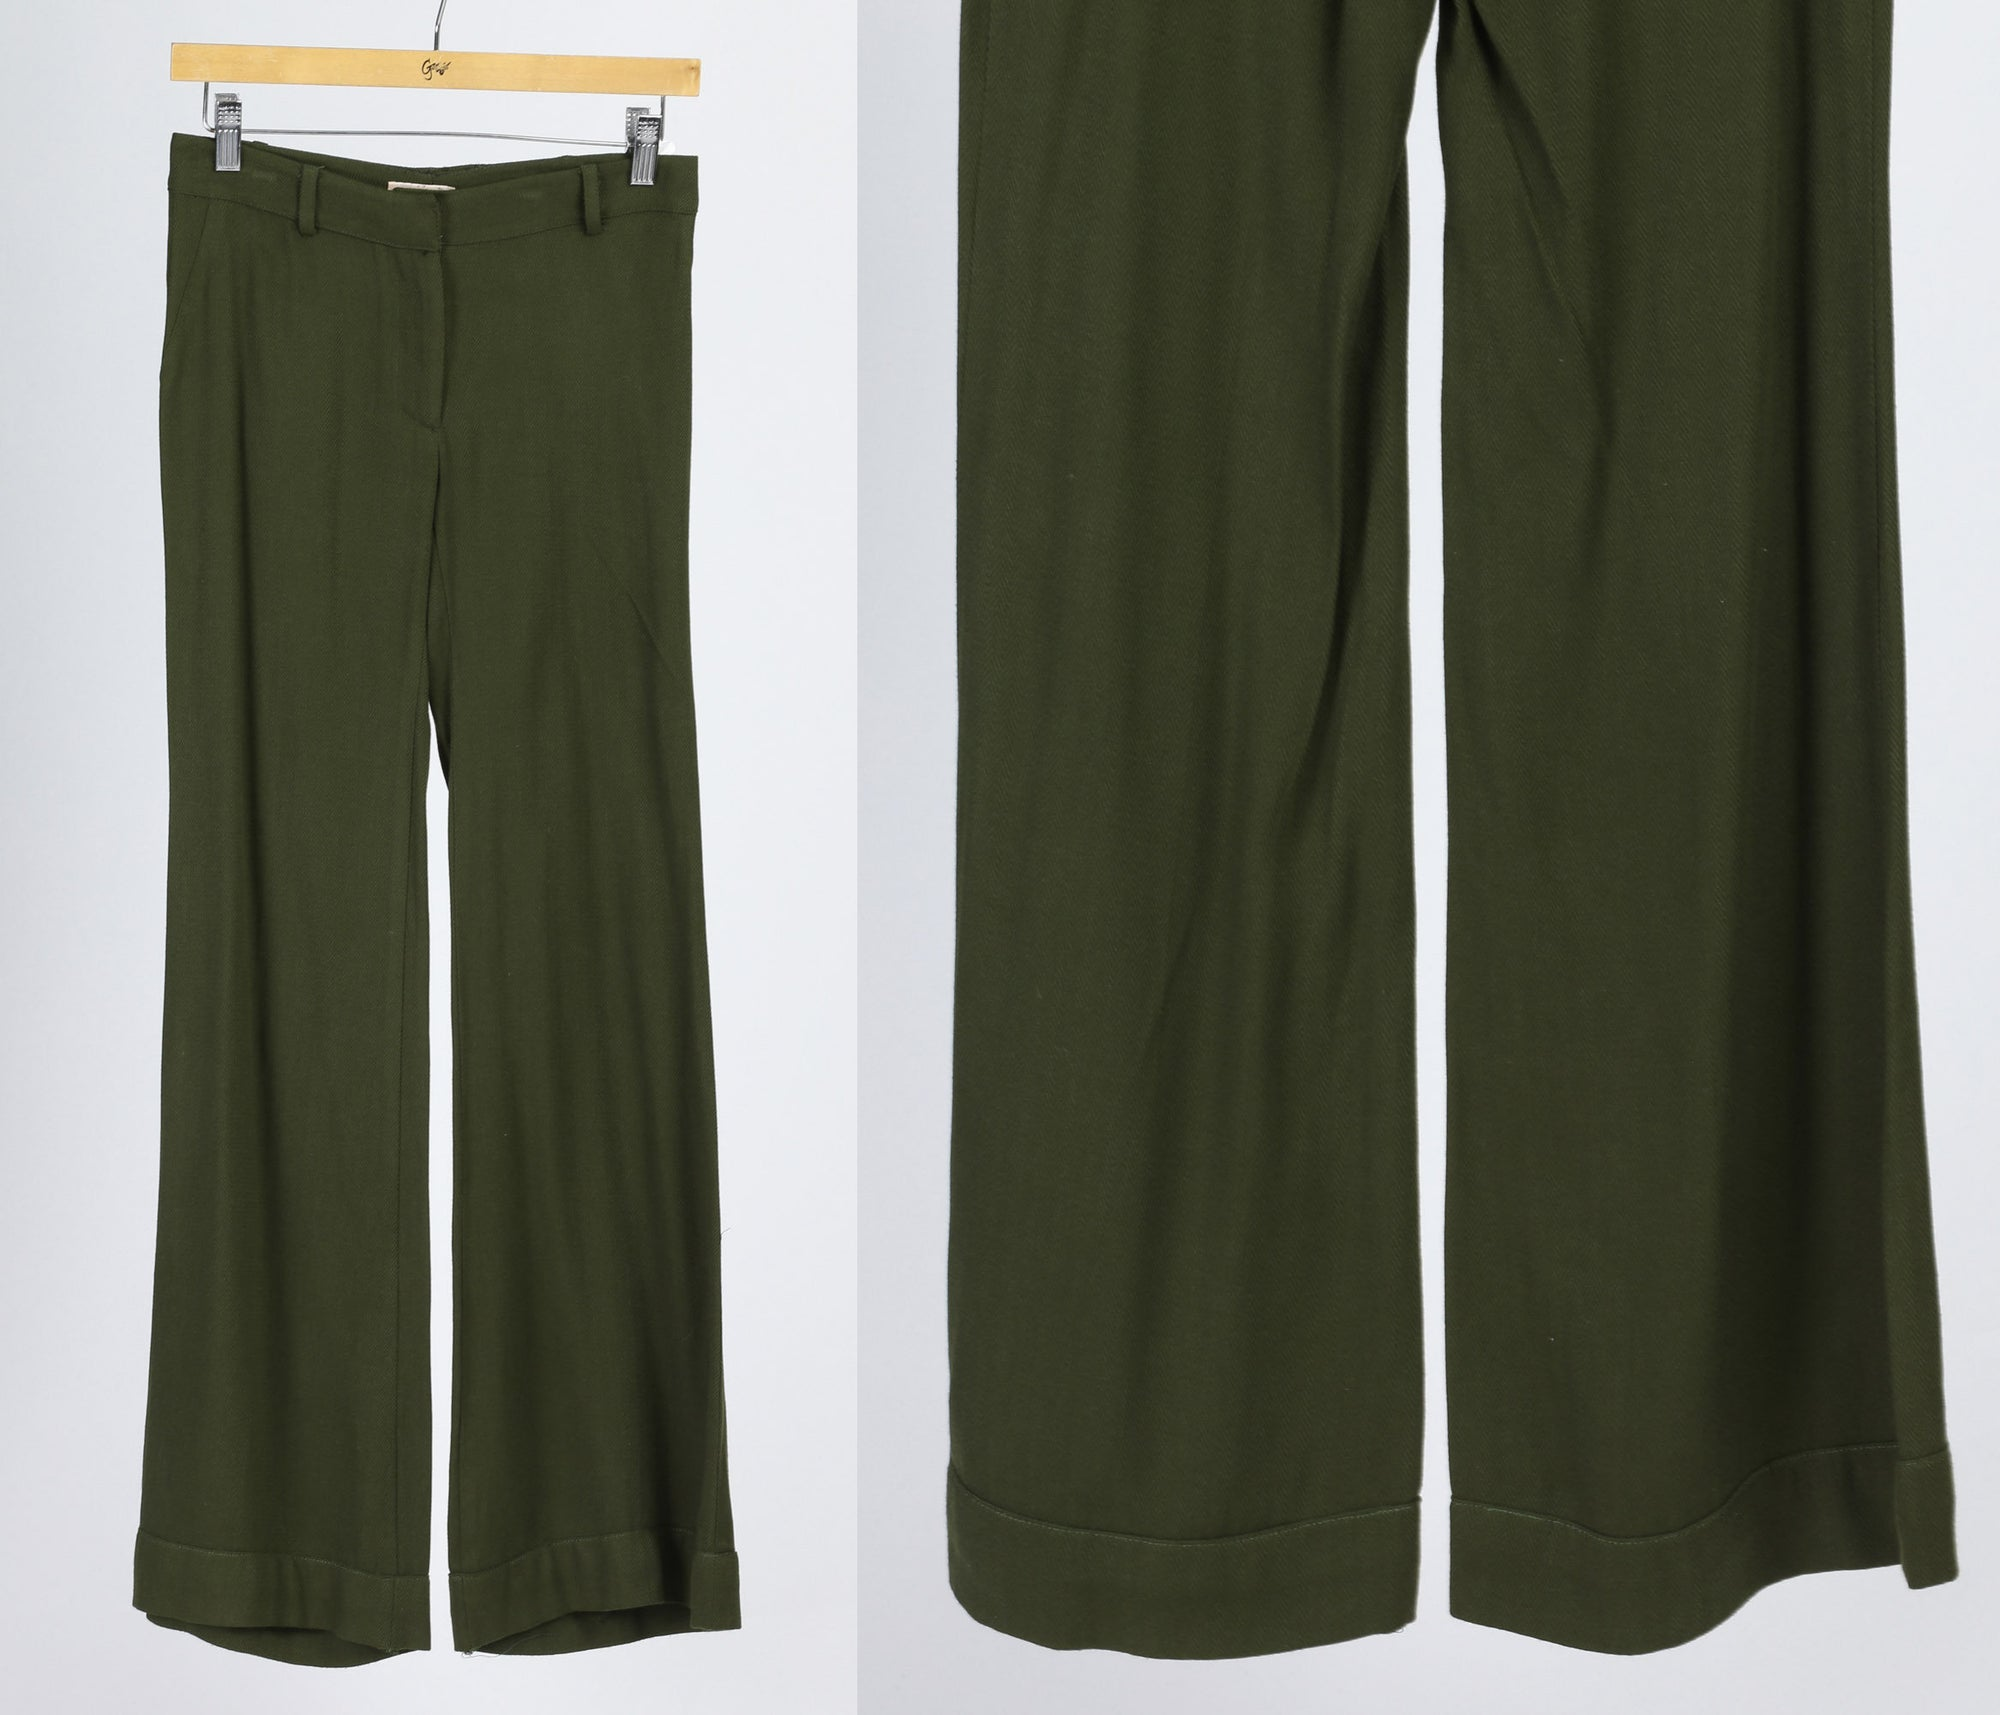 Vintage Olive Green Flared Pants - Extra Small